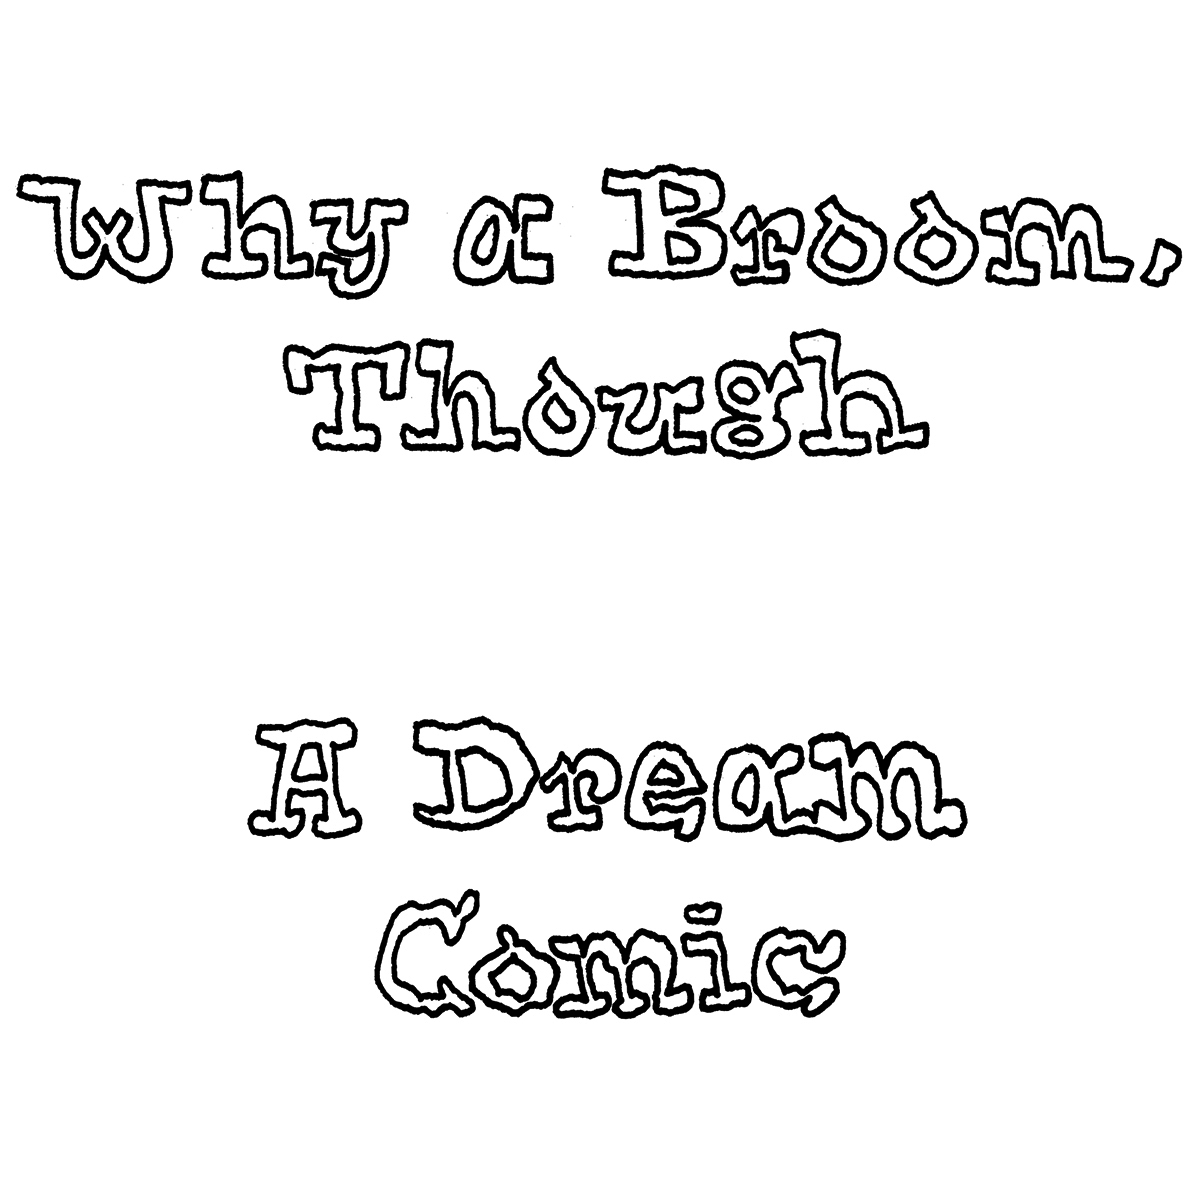 """Why a Broom, Though,"" a Dream Comic by Jesse Baggs (panel 1 of 4)"